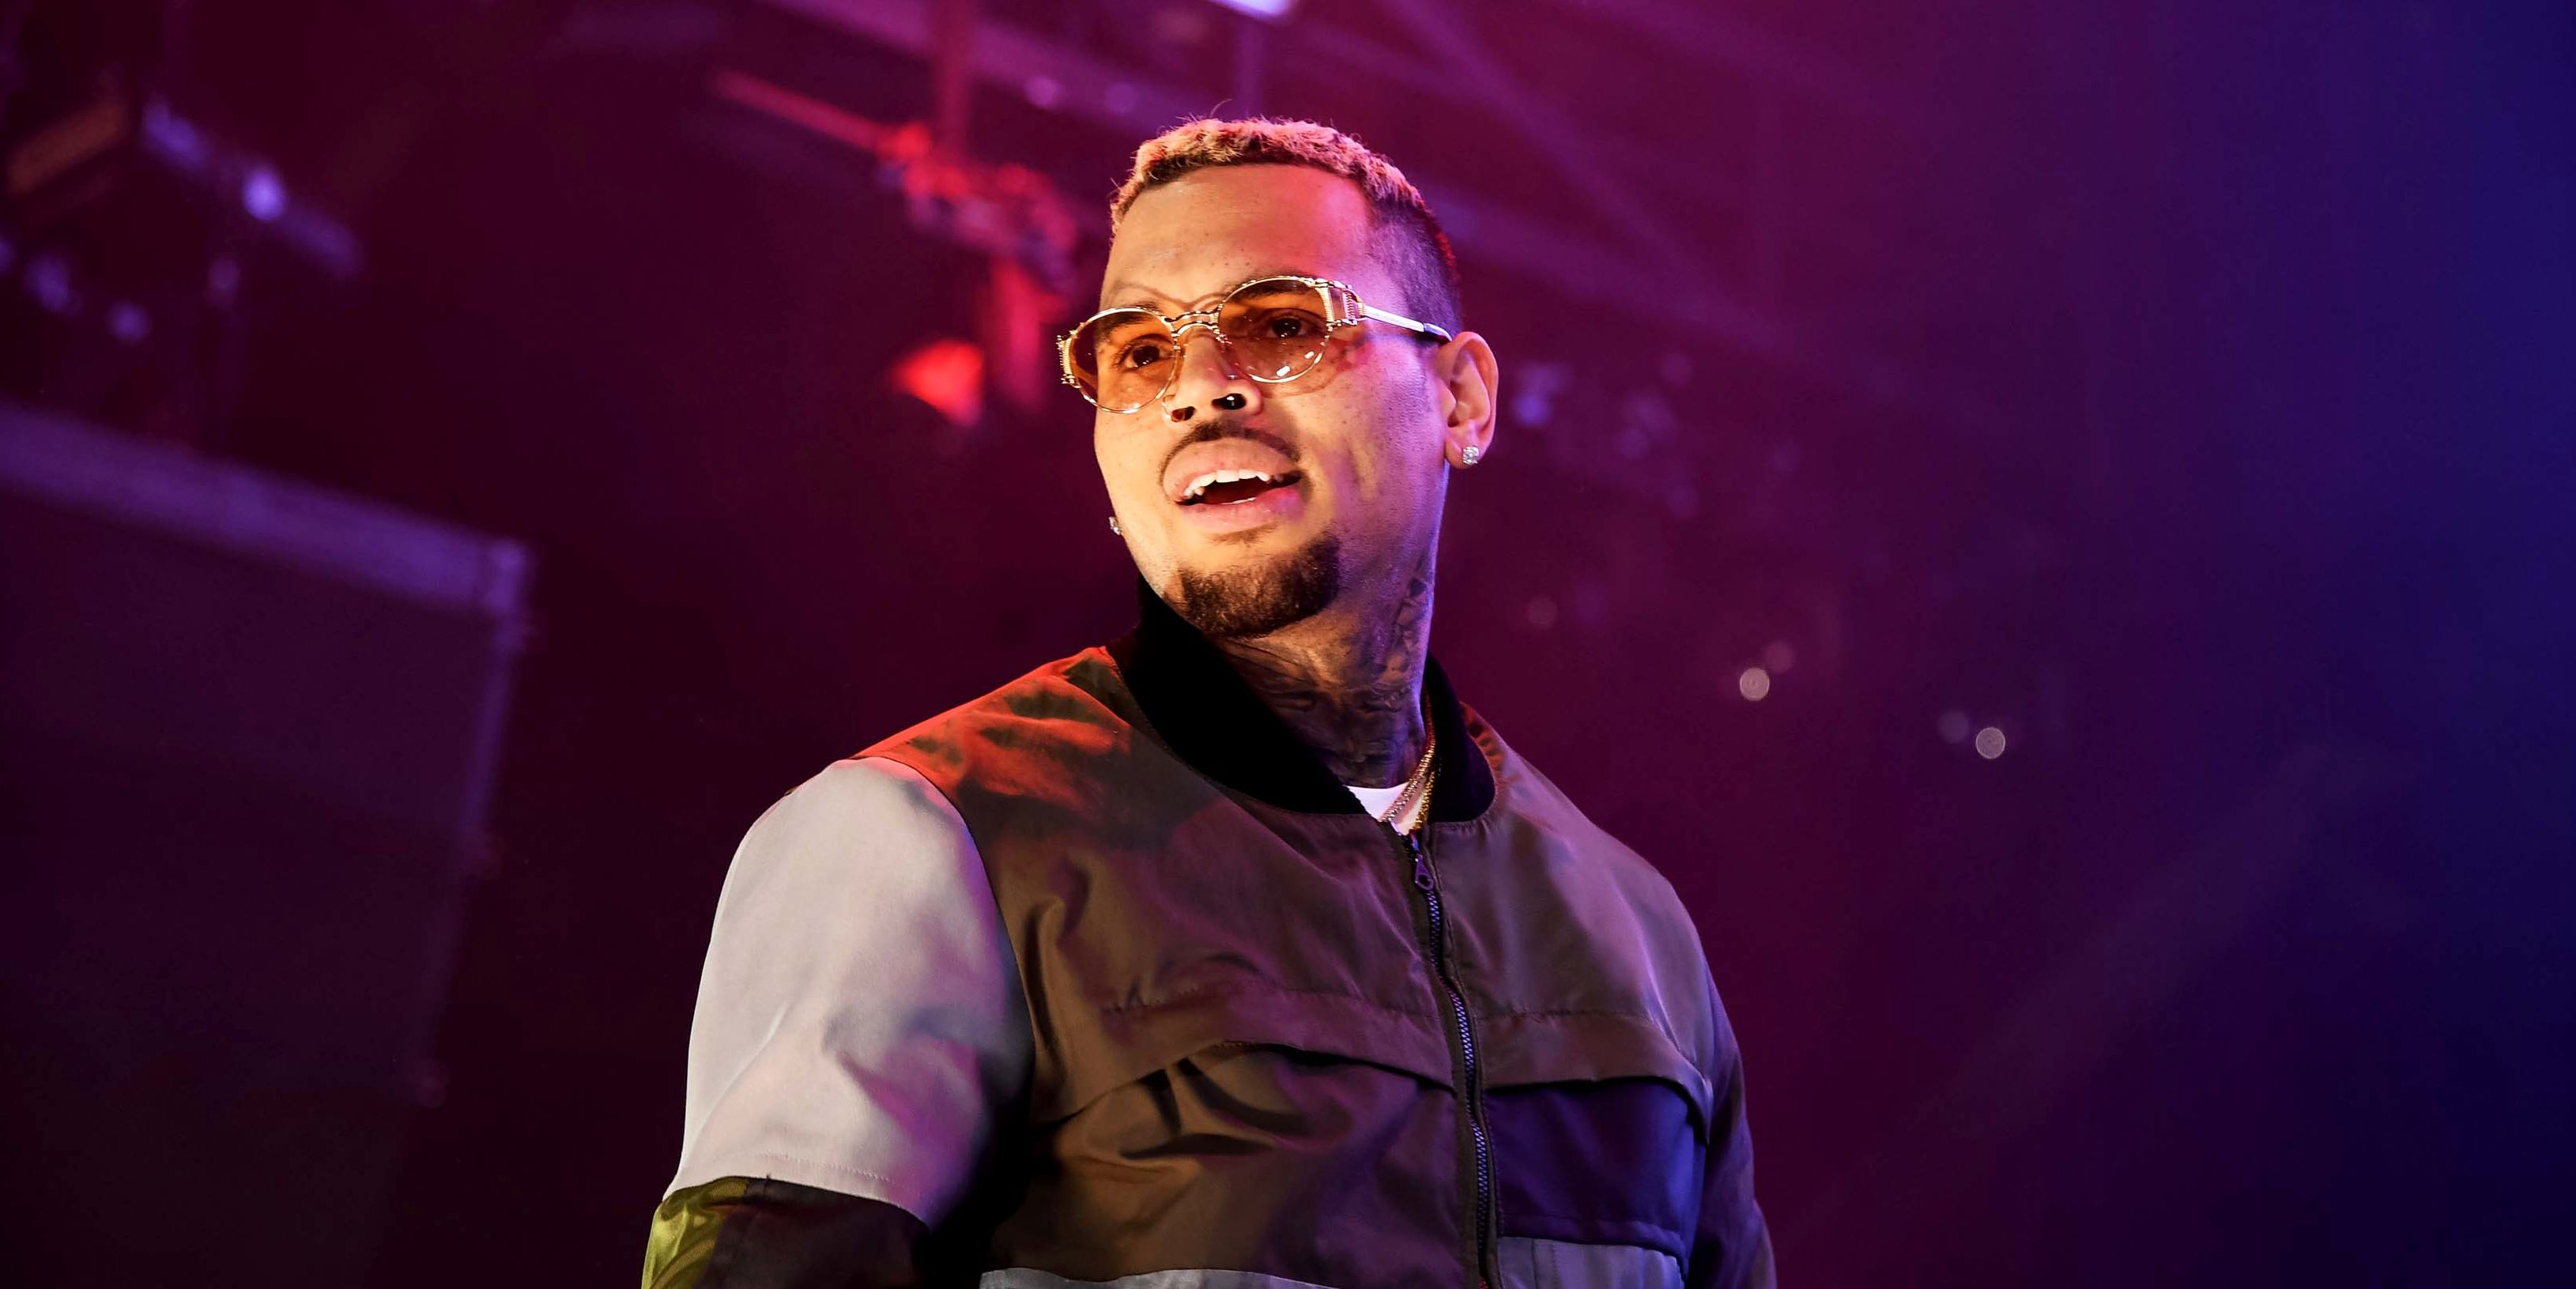 Chris Brown is Confused About Projected Album Sales